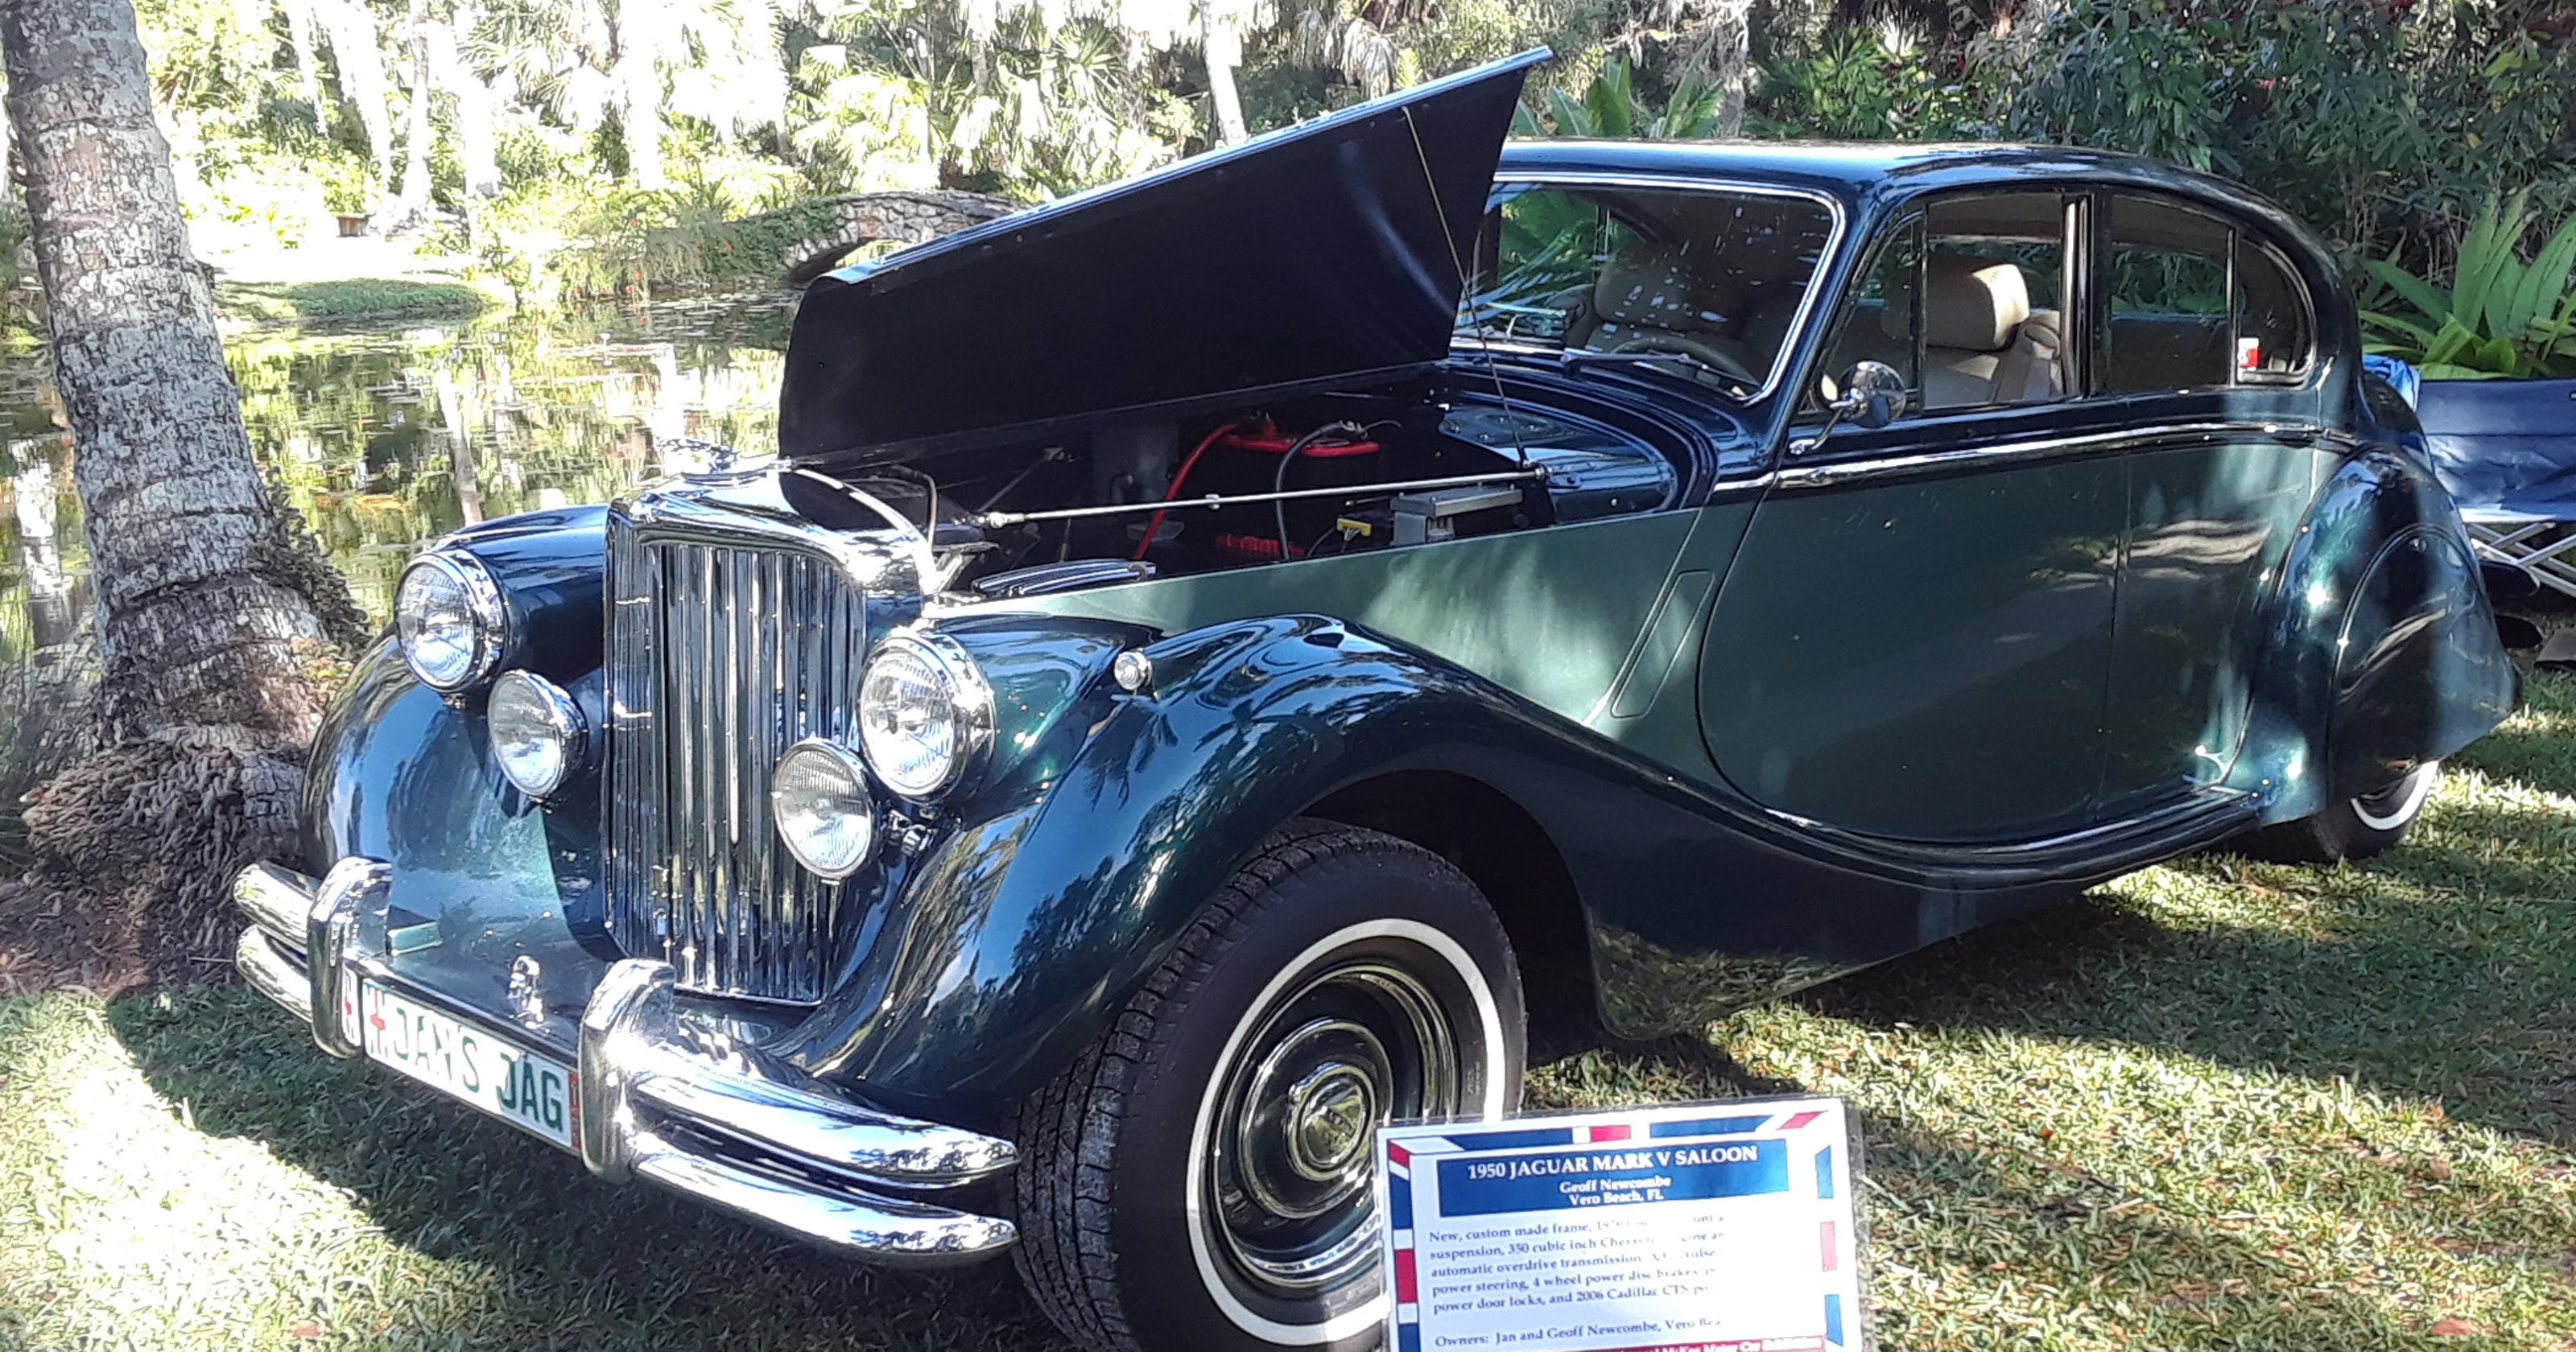 February Brings Car Shows Galore - Vero beach car show